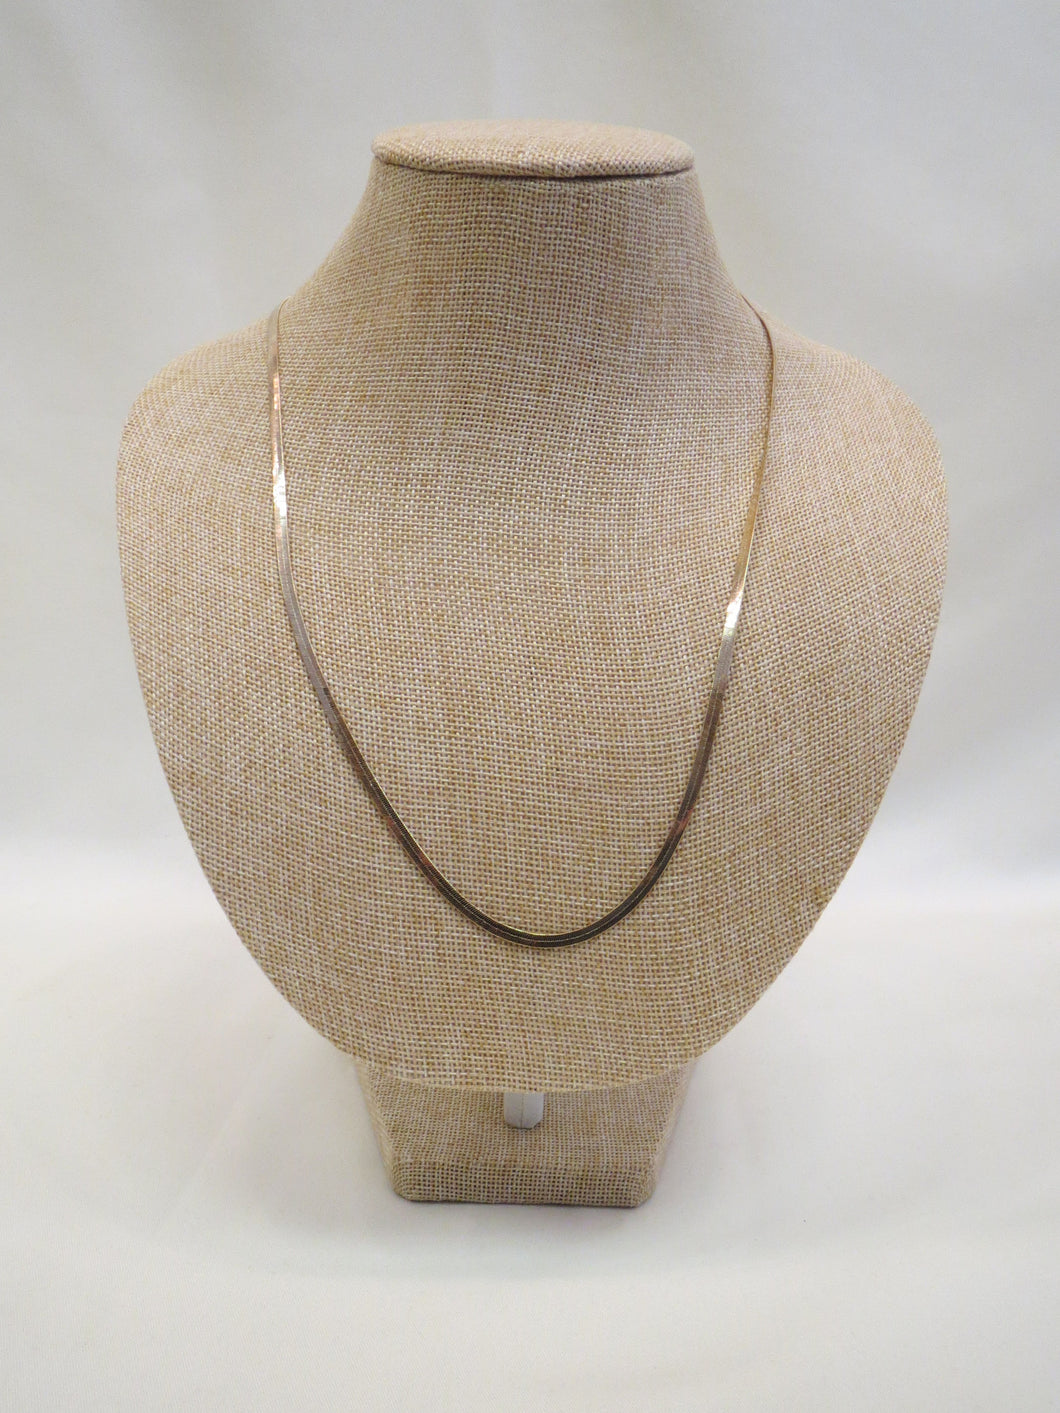 ADO | Gold Flat Chain Necklace Thin - All Decd Out